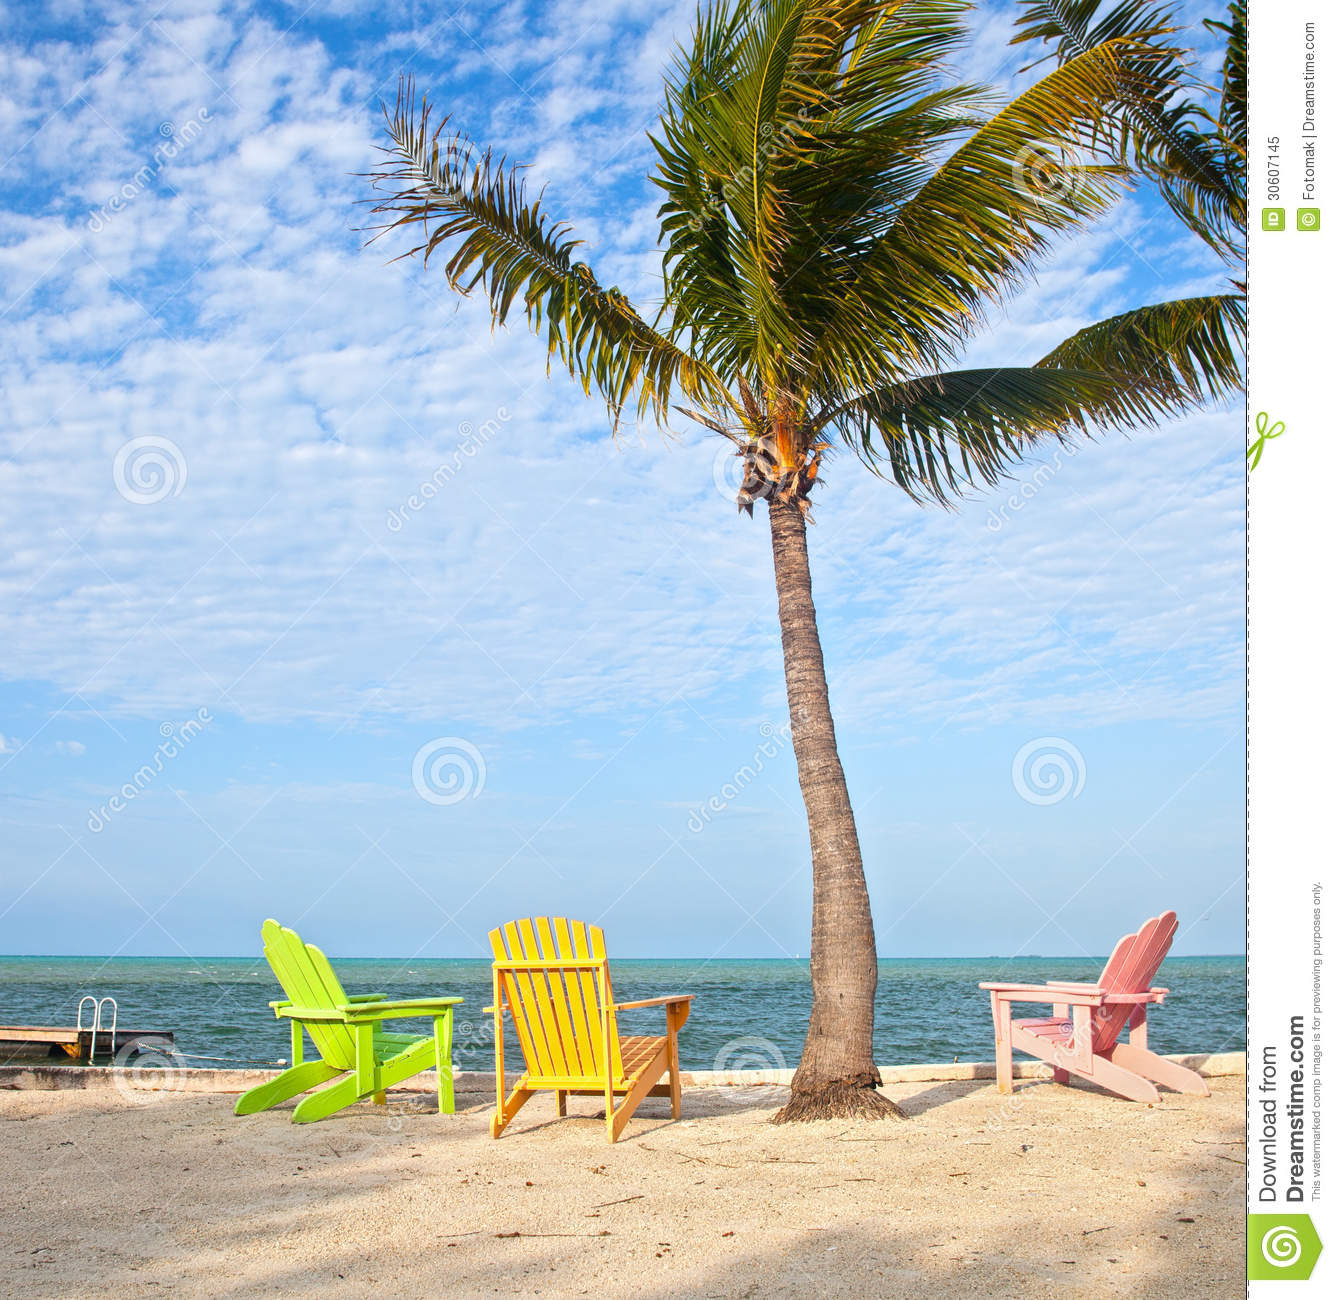 Summer Beach Scene With Palm Trees And Lounge Chairs. Panoramic, Keys.